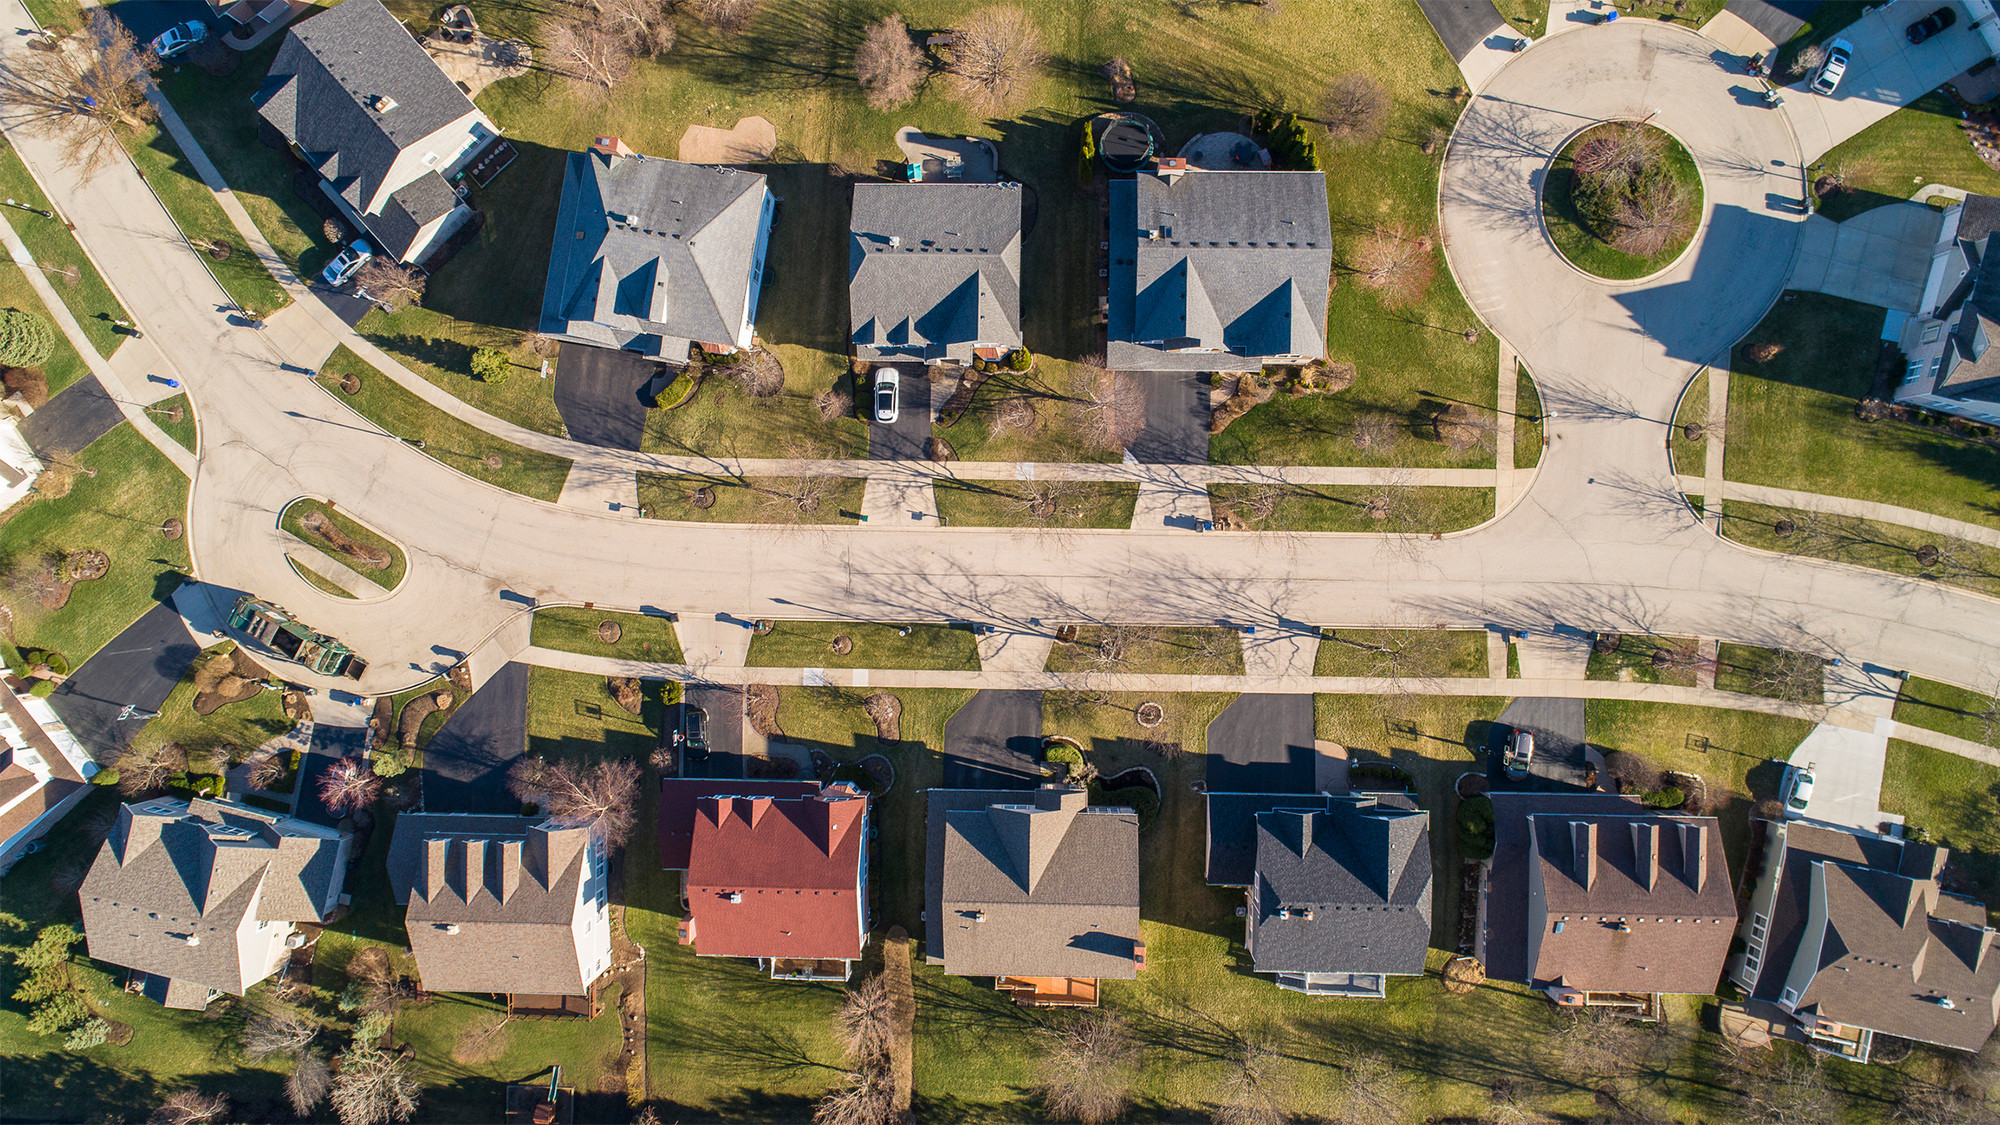 Fannie Mae: Home sales will decline by nearly 15% in 2020 due to coronavirus